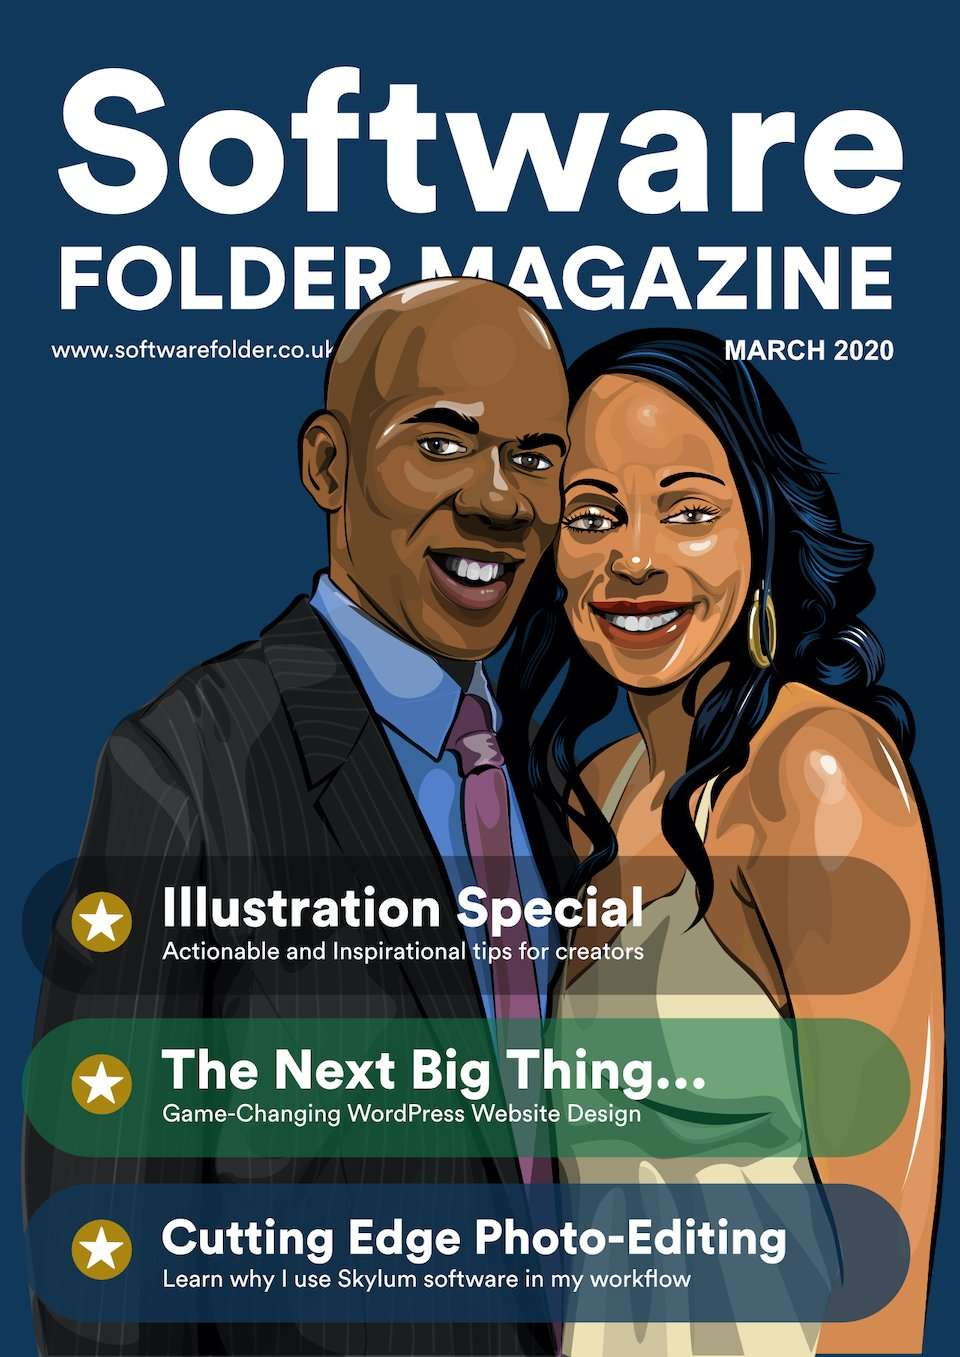 softwarefolder-magazine-960